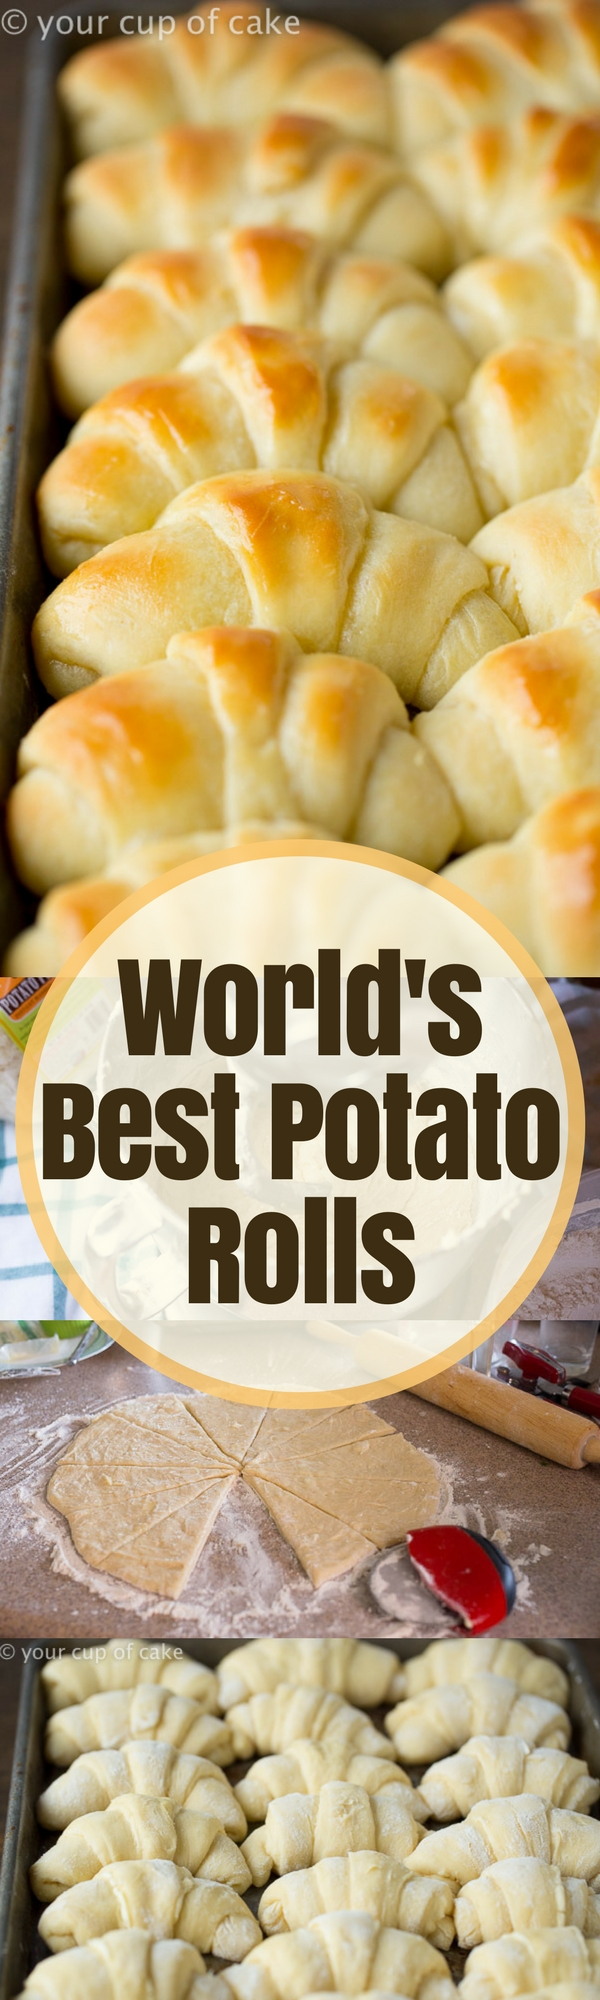 World's Best Potato Rolls! These are the fluffiest and best dinner rolls I have ever made!